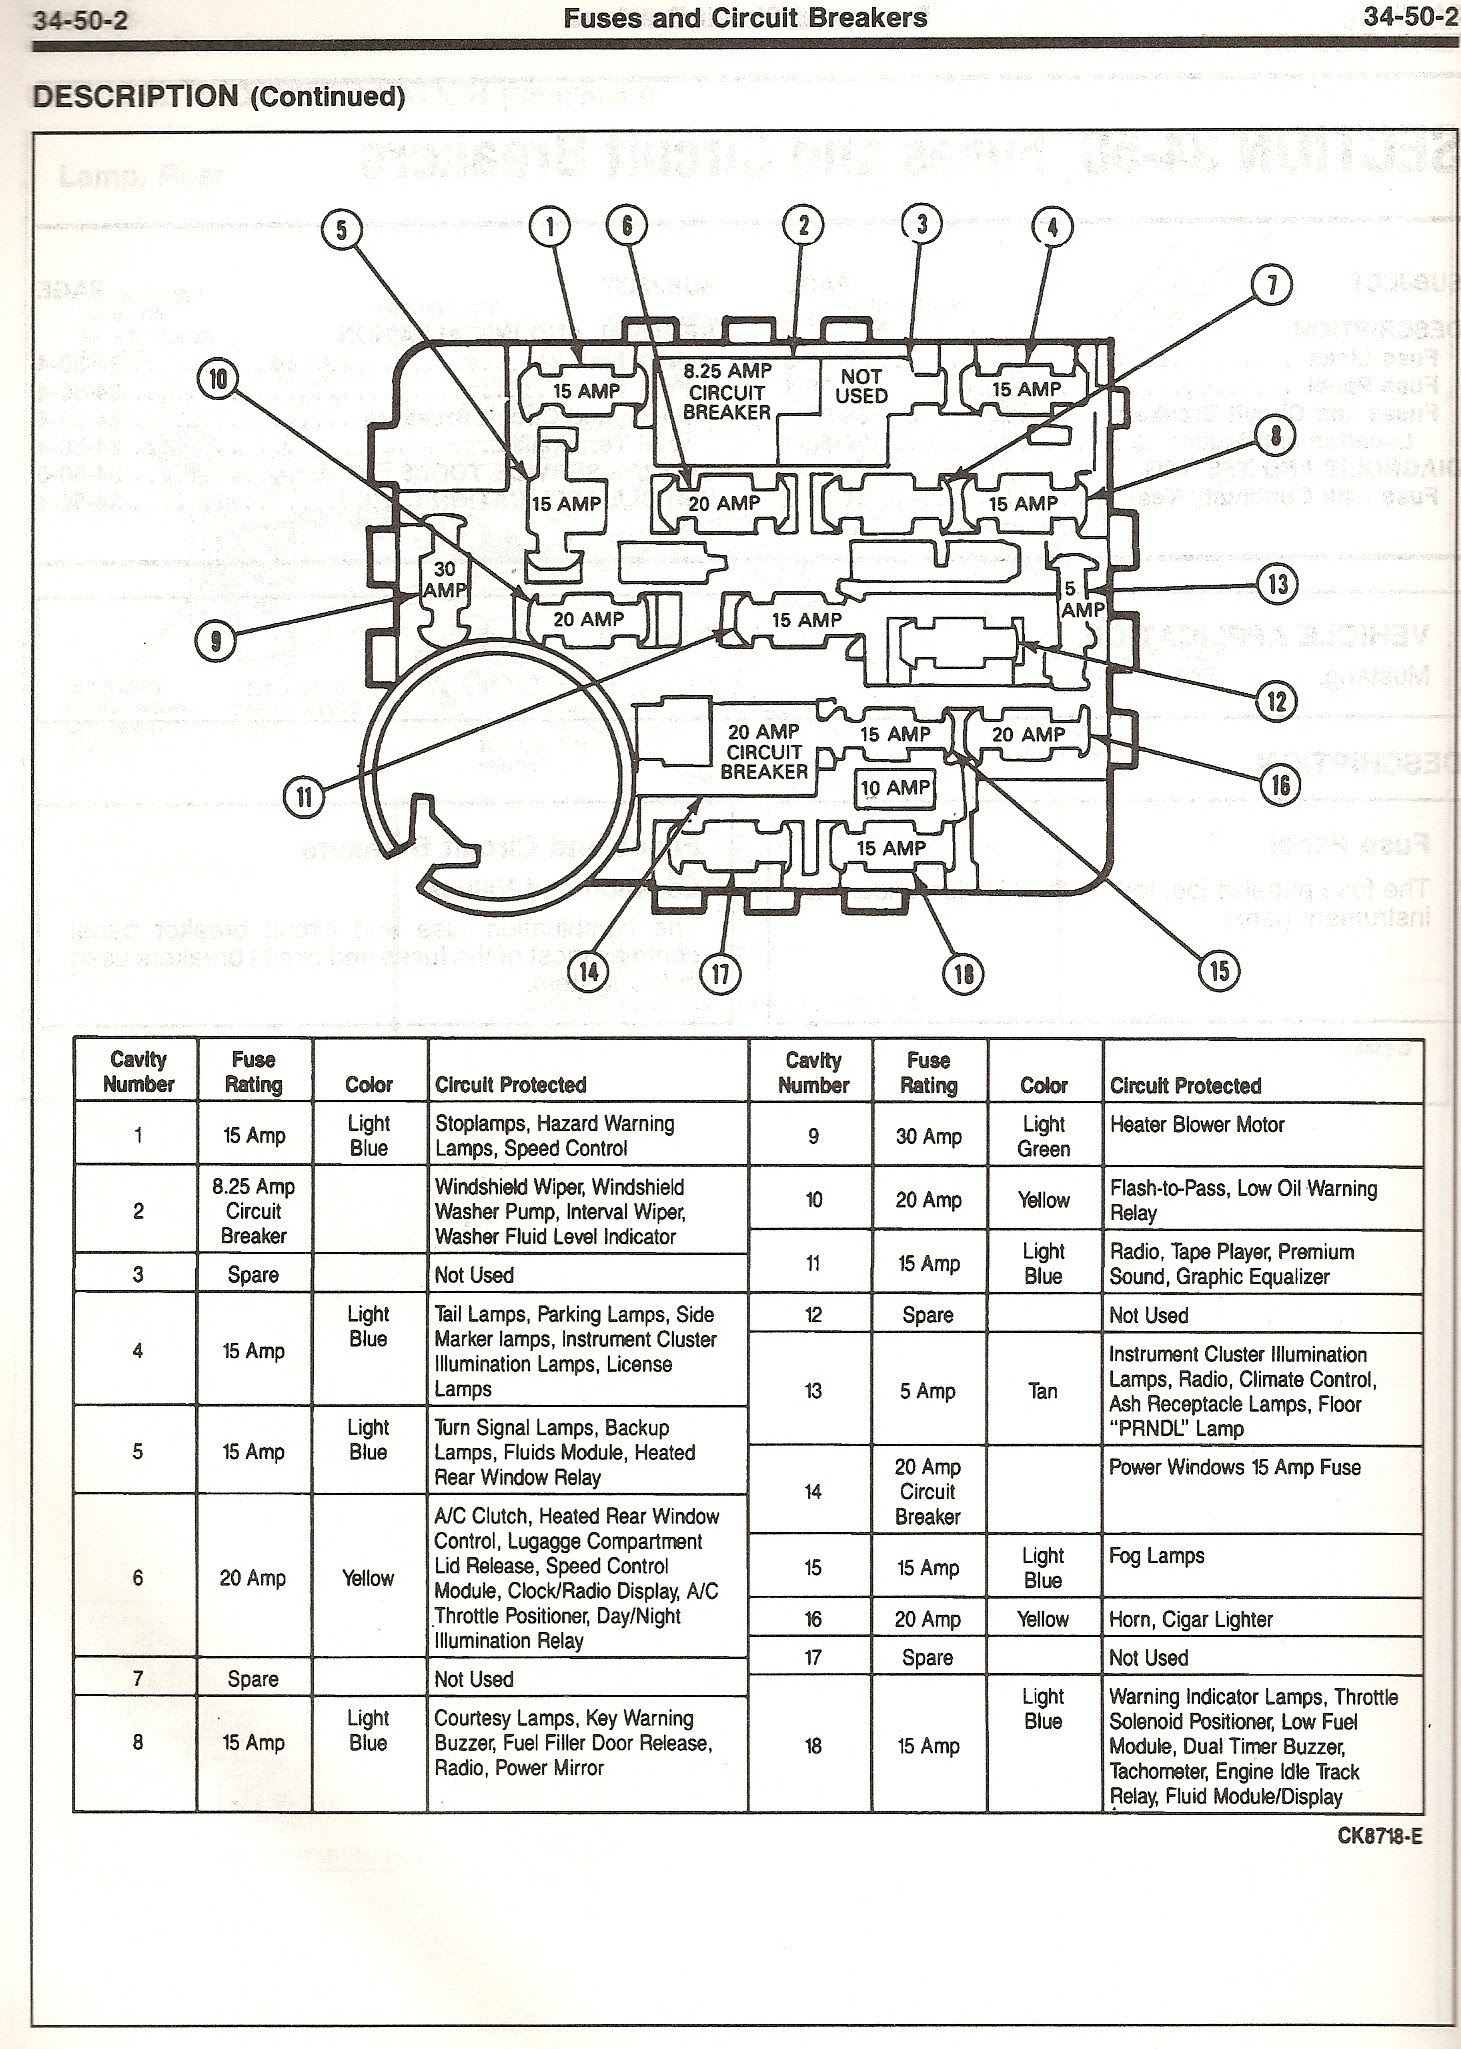 91 Mustang Fuse Box Diagram Wiring Diagram Extend Extend Lechicchedimammavale It